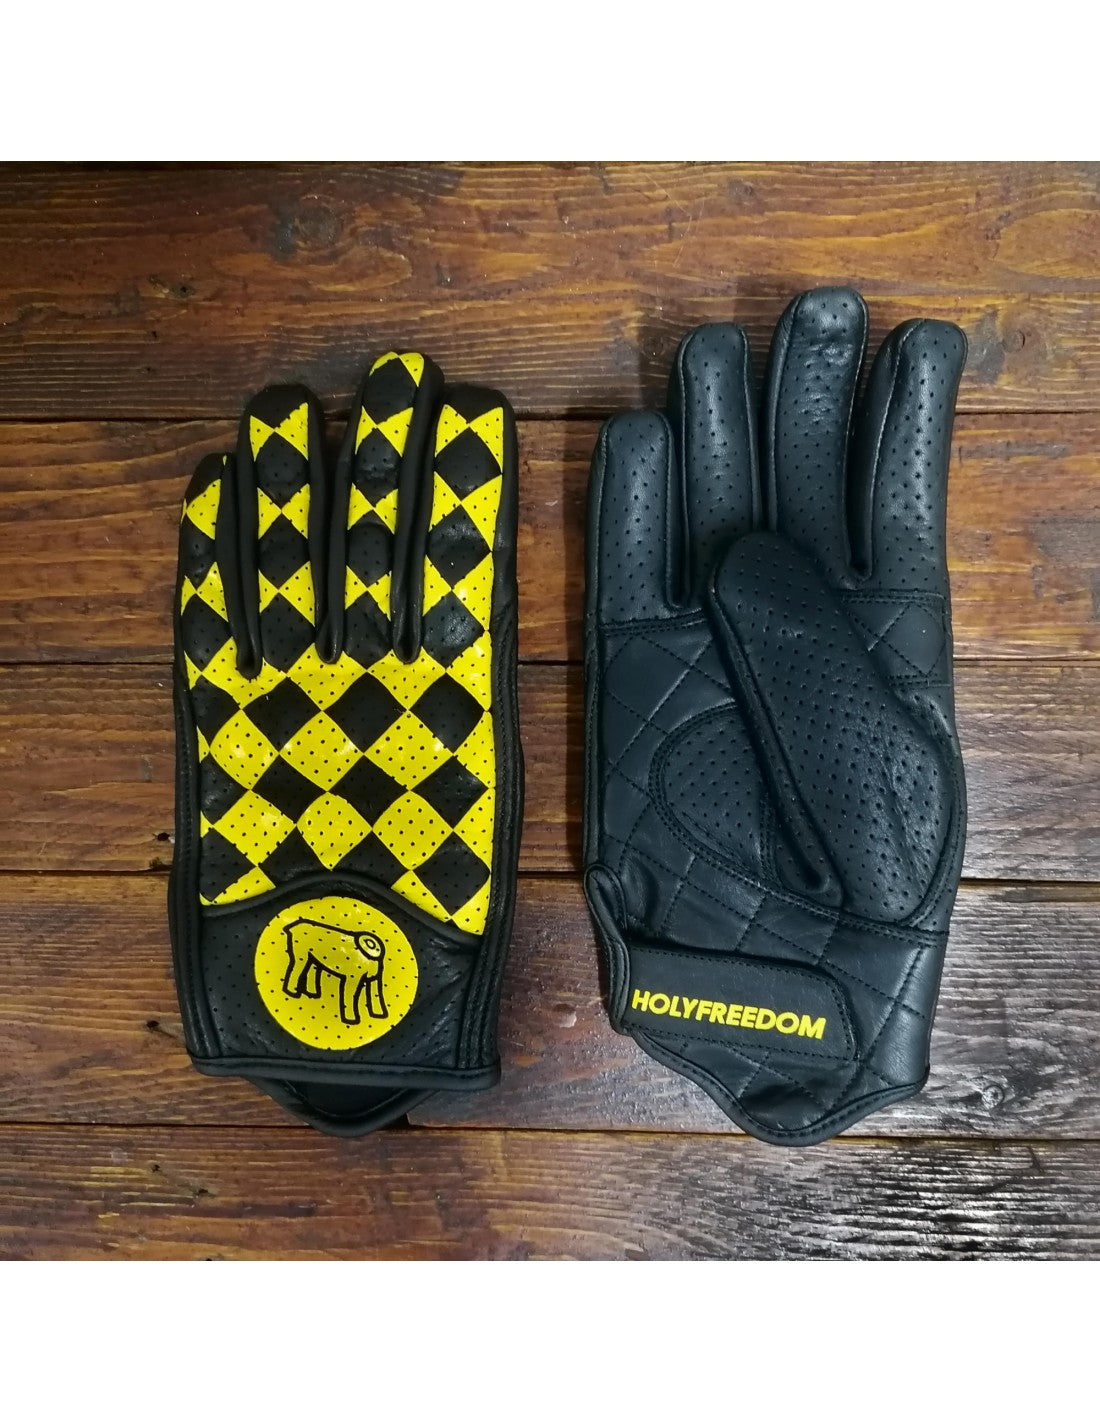 rogue motorcycles, black and yellow summer motorcycle gloves, biker gloves, motorbike gloves, rider gloves, rider gear, motorbike gear, leather gloves, perth wa, motorbike shop, custom bike parts, custom motorbike gear.